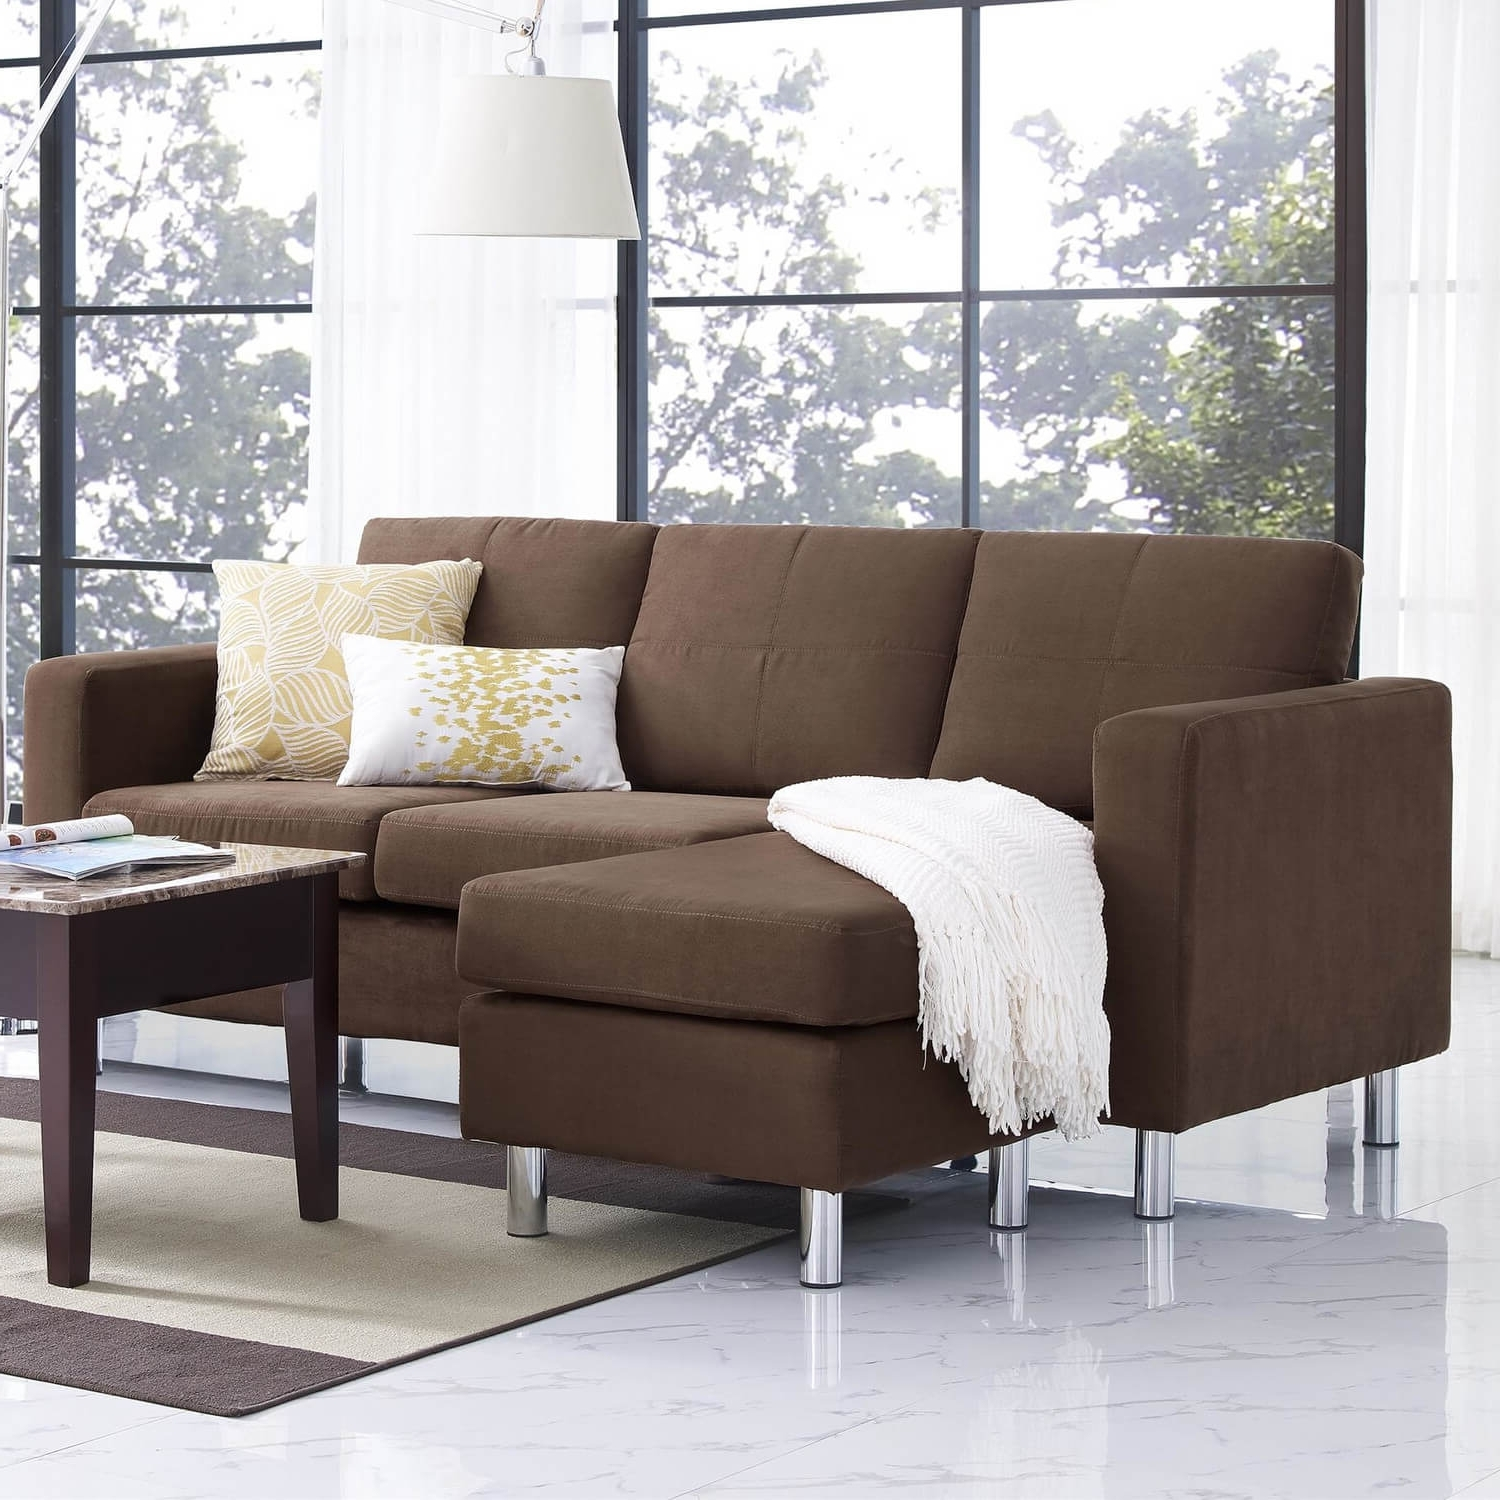 Popular 40 Cheap Sectional Sofas Under $500 For 2018 Within Sectional Sofas Under  (View 8 of 20)